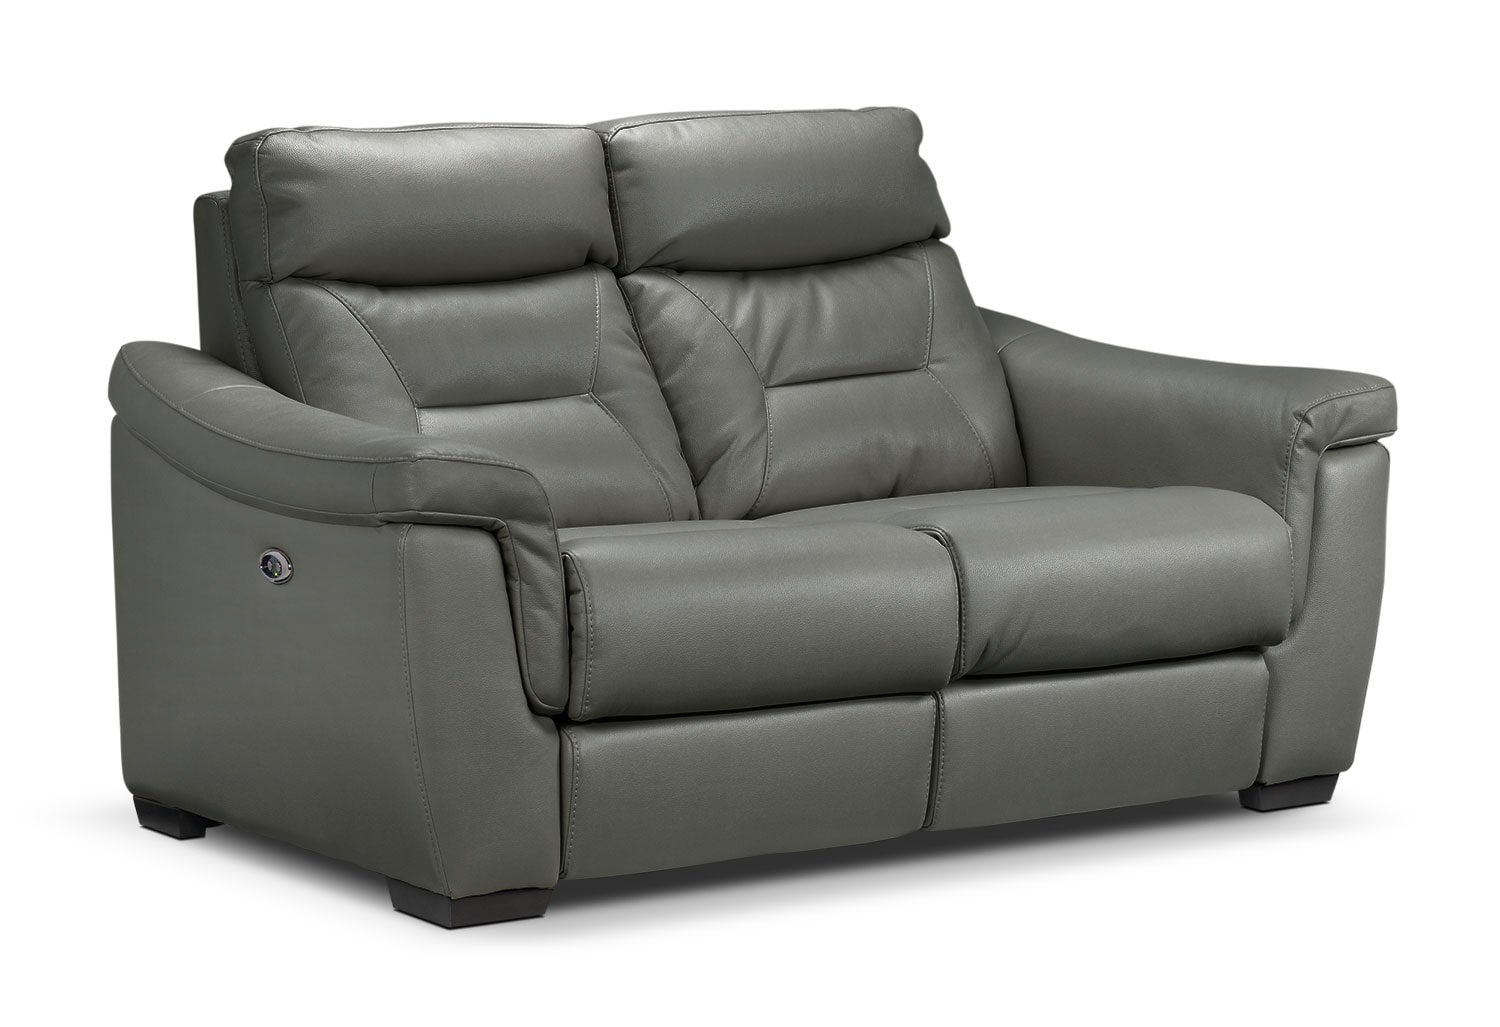 Living Room Furniture - Ralston Power Reclining Loveseat - Graphite